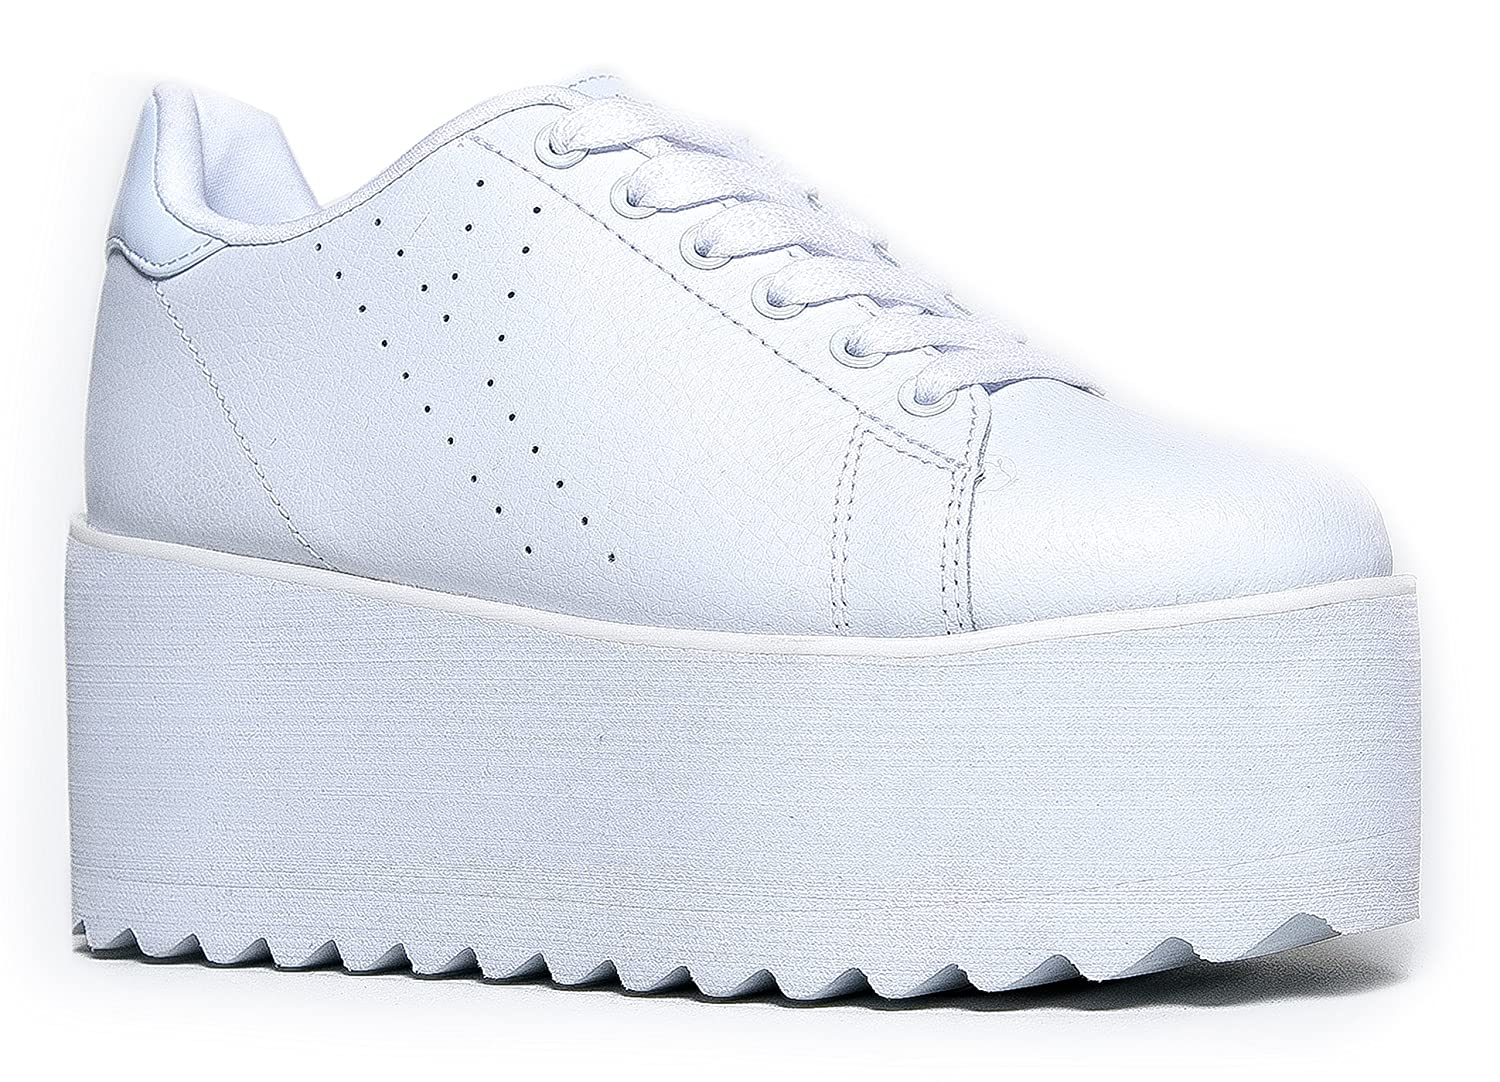 YRU Lala Casual Platform Sneaker - High Rave Flatform Closed Round Toe Creepers B07BFKW7CD 10 M US|White